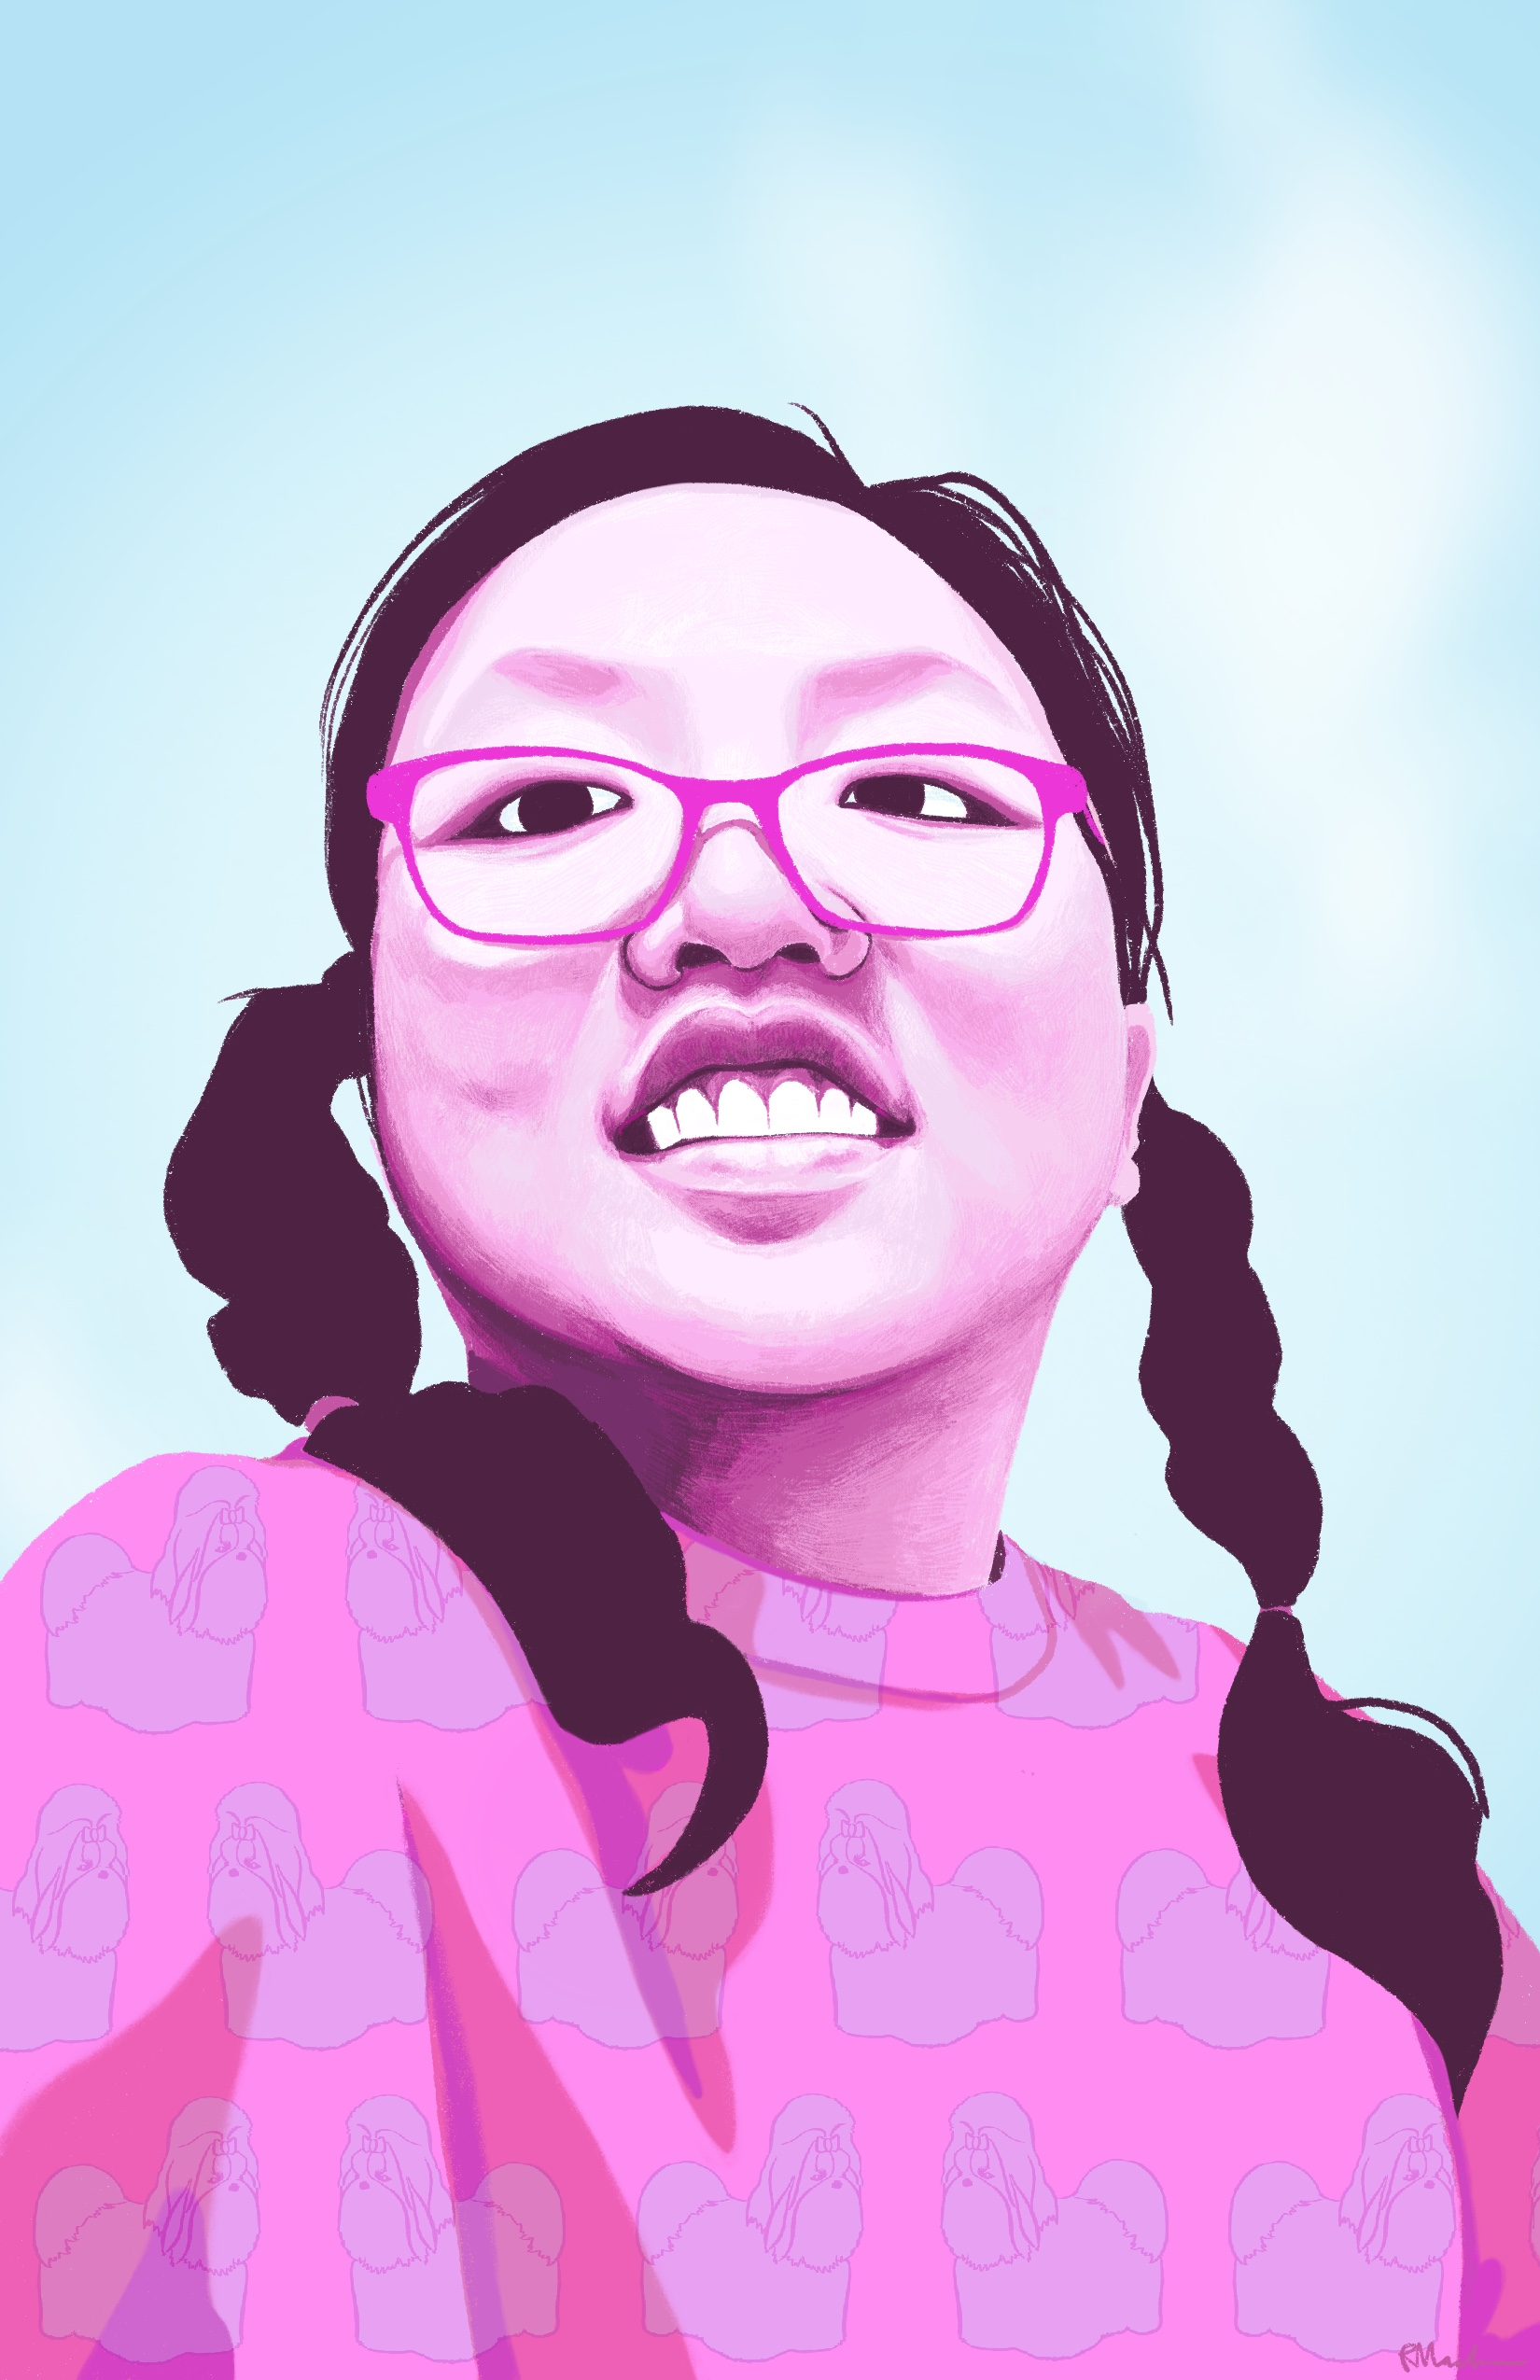 A digital painting of Vicki, a young woman of Taiwanese descent, who is smiling and looking down at the viewer. Vicki is rendered in shades of pinks and purples, wears pink glasses and braided pigtails, and has a pattern of shih tzu dogs on her sweater. The background is light blue with a light source coming from the top right corner.